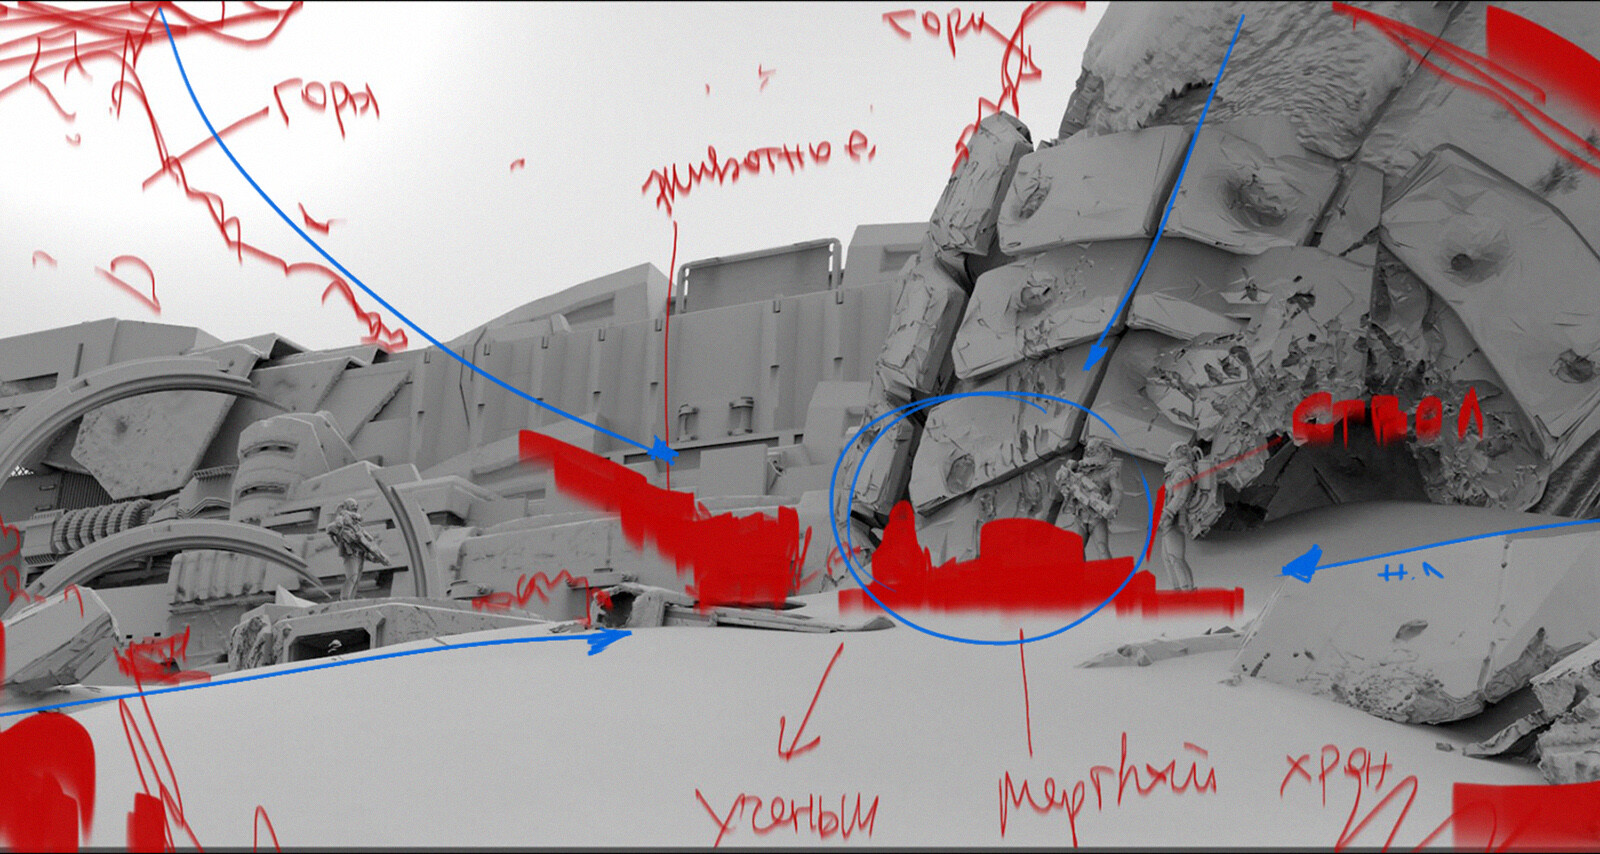 Some wip from artwork. (russian language on image)